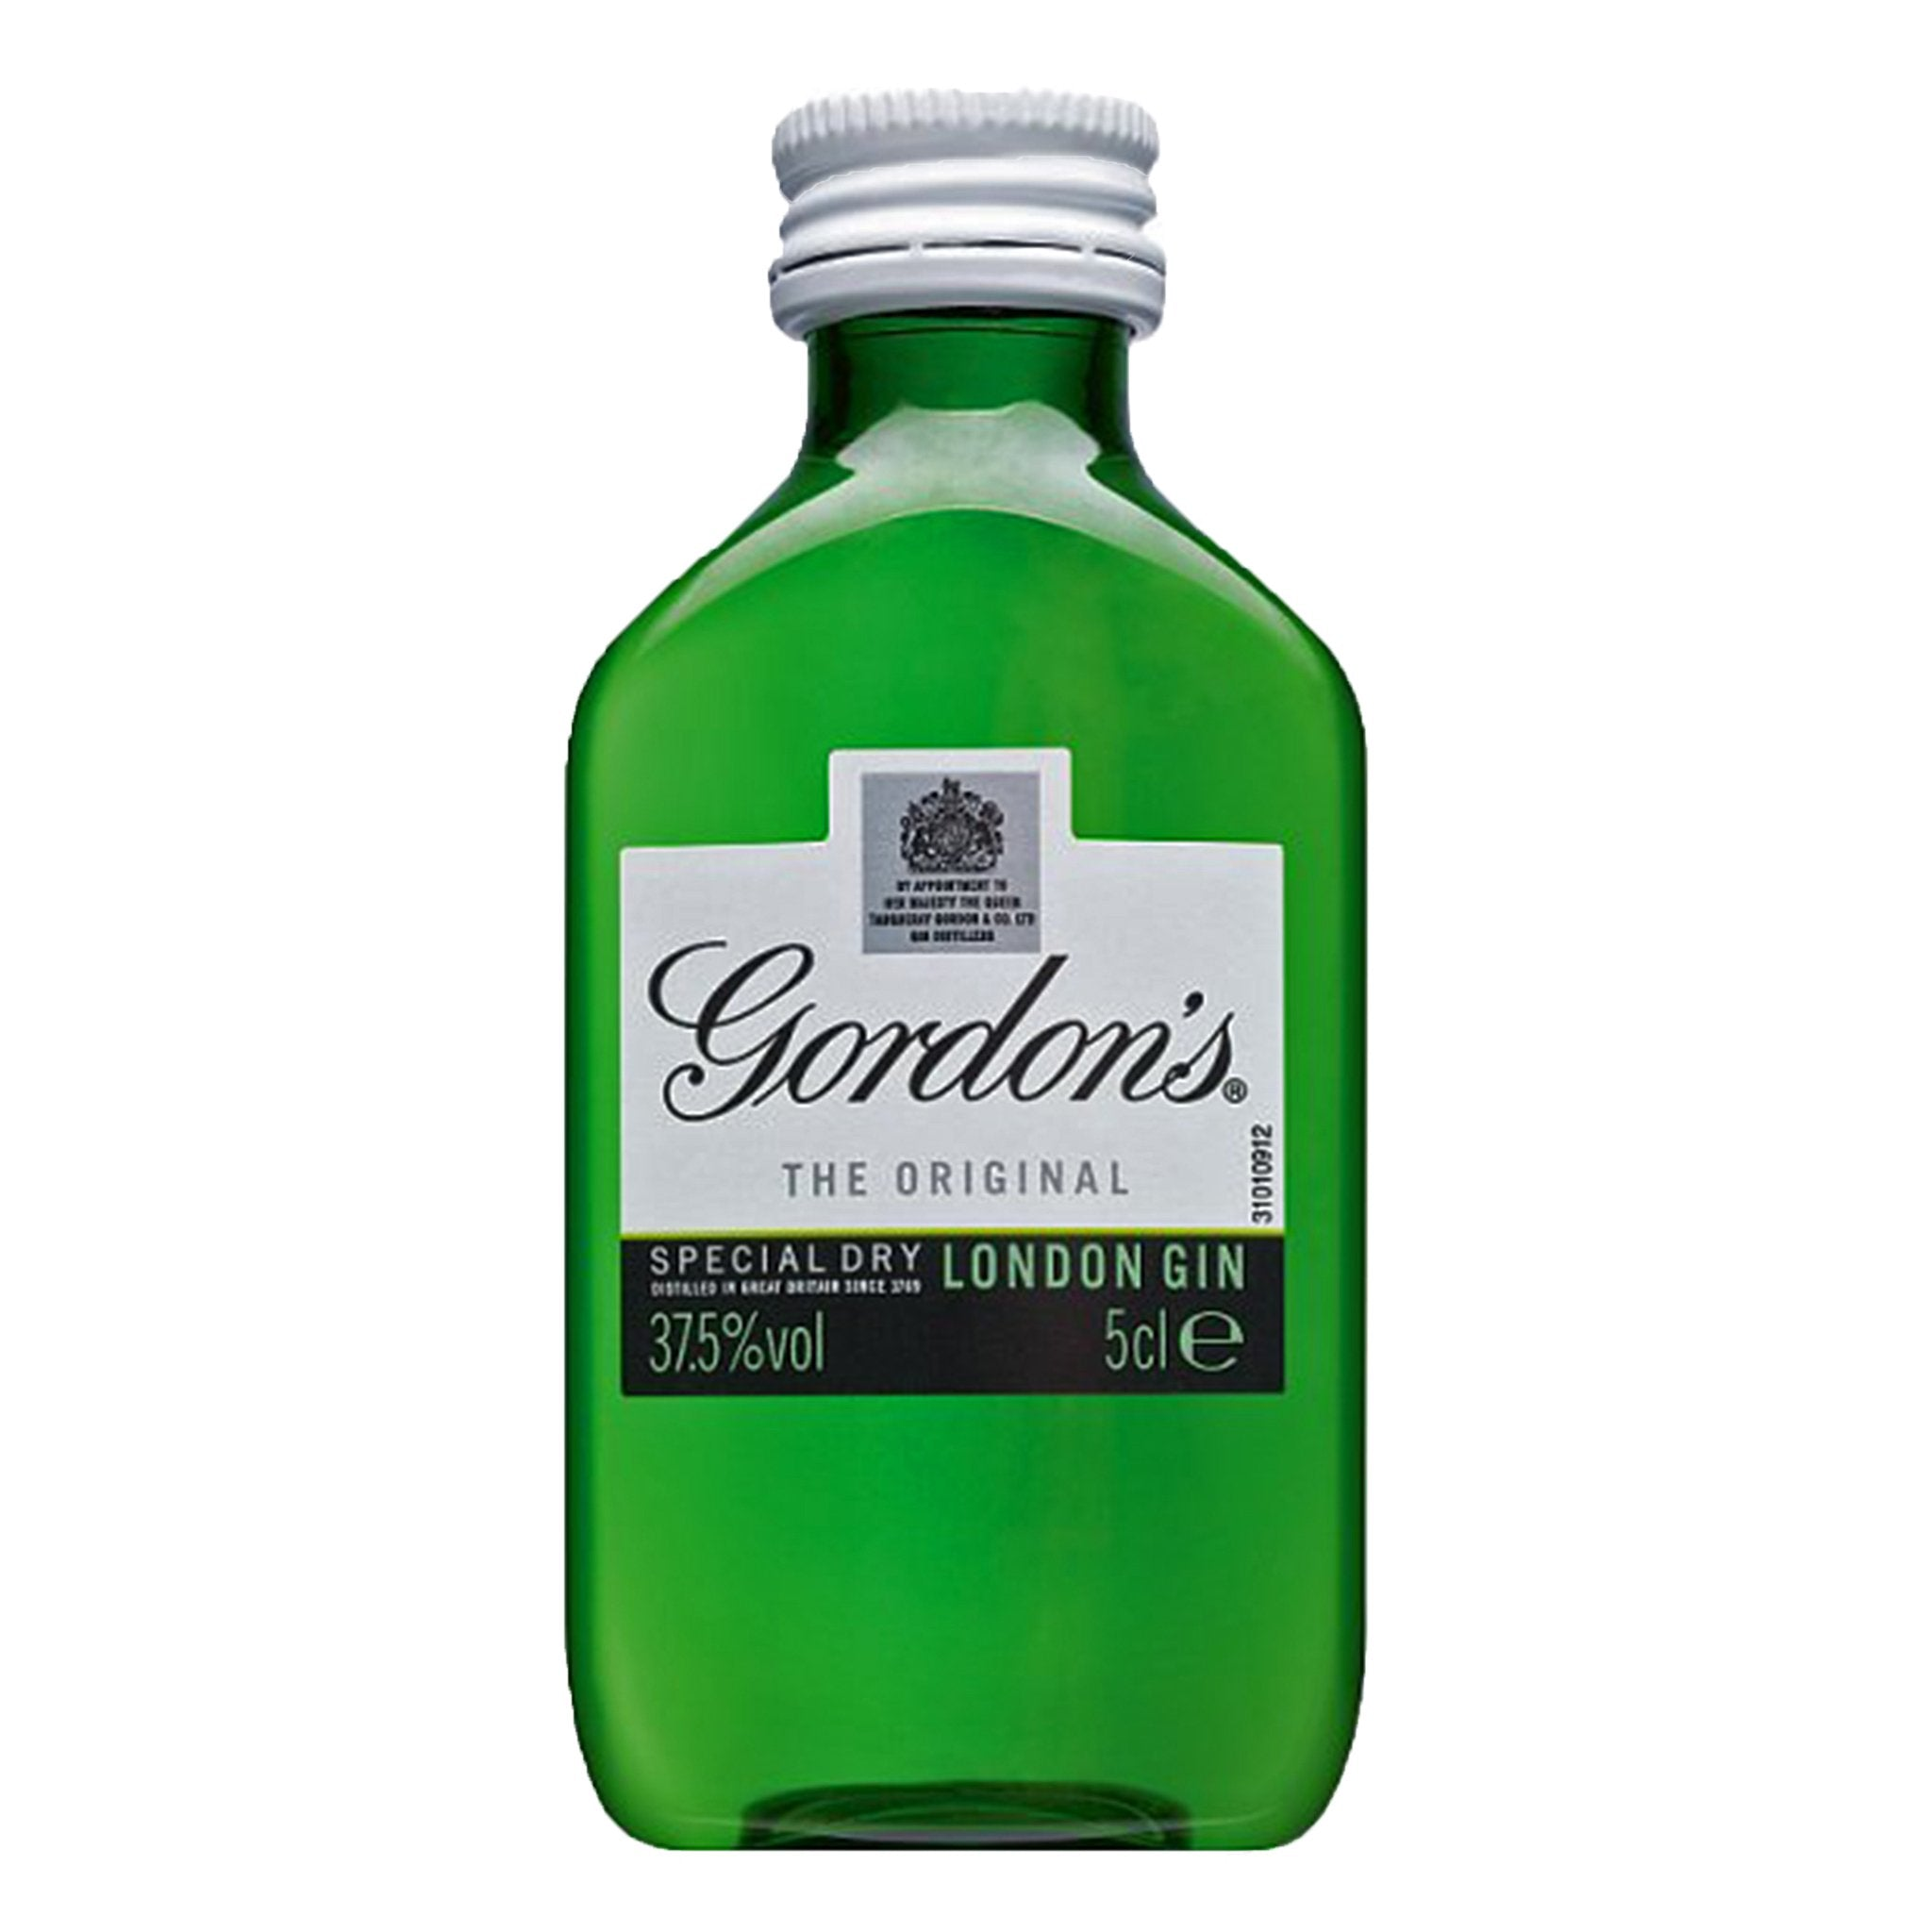 Gordon's Special Dry London Gin 5cl, Alcoholic Beverages by Drinks Shop